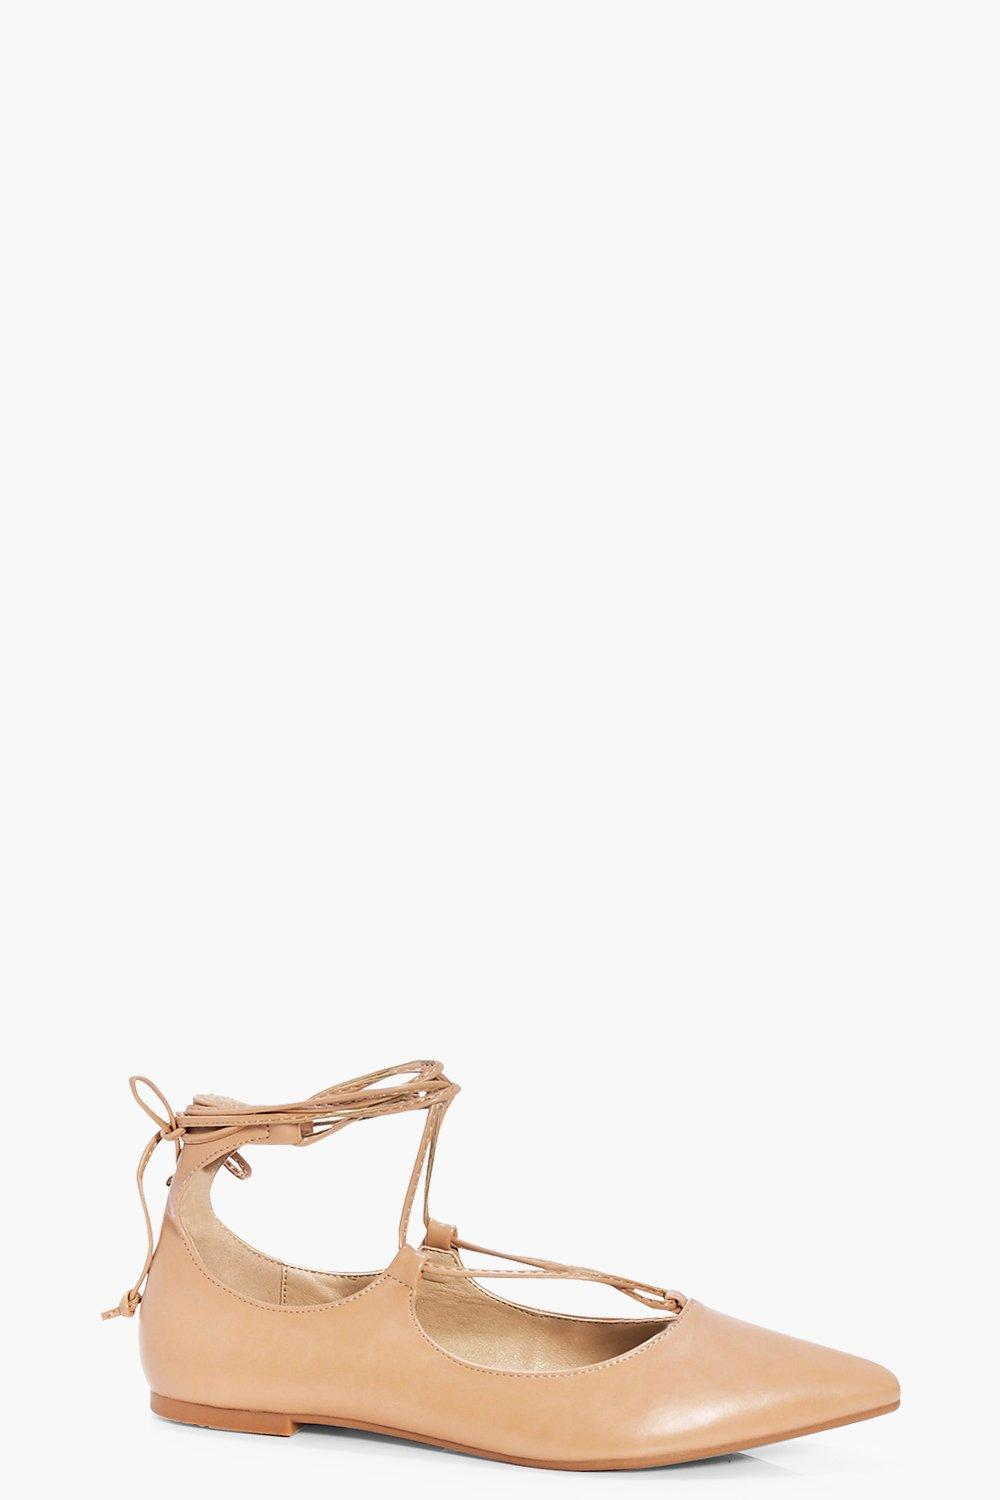 Lily Lace Up Pointed Ballet